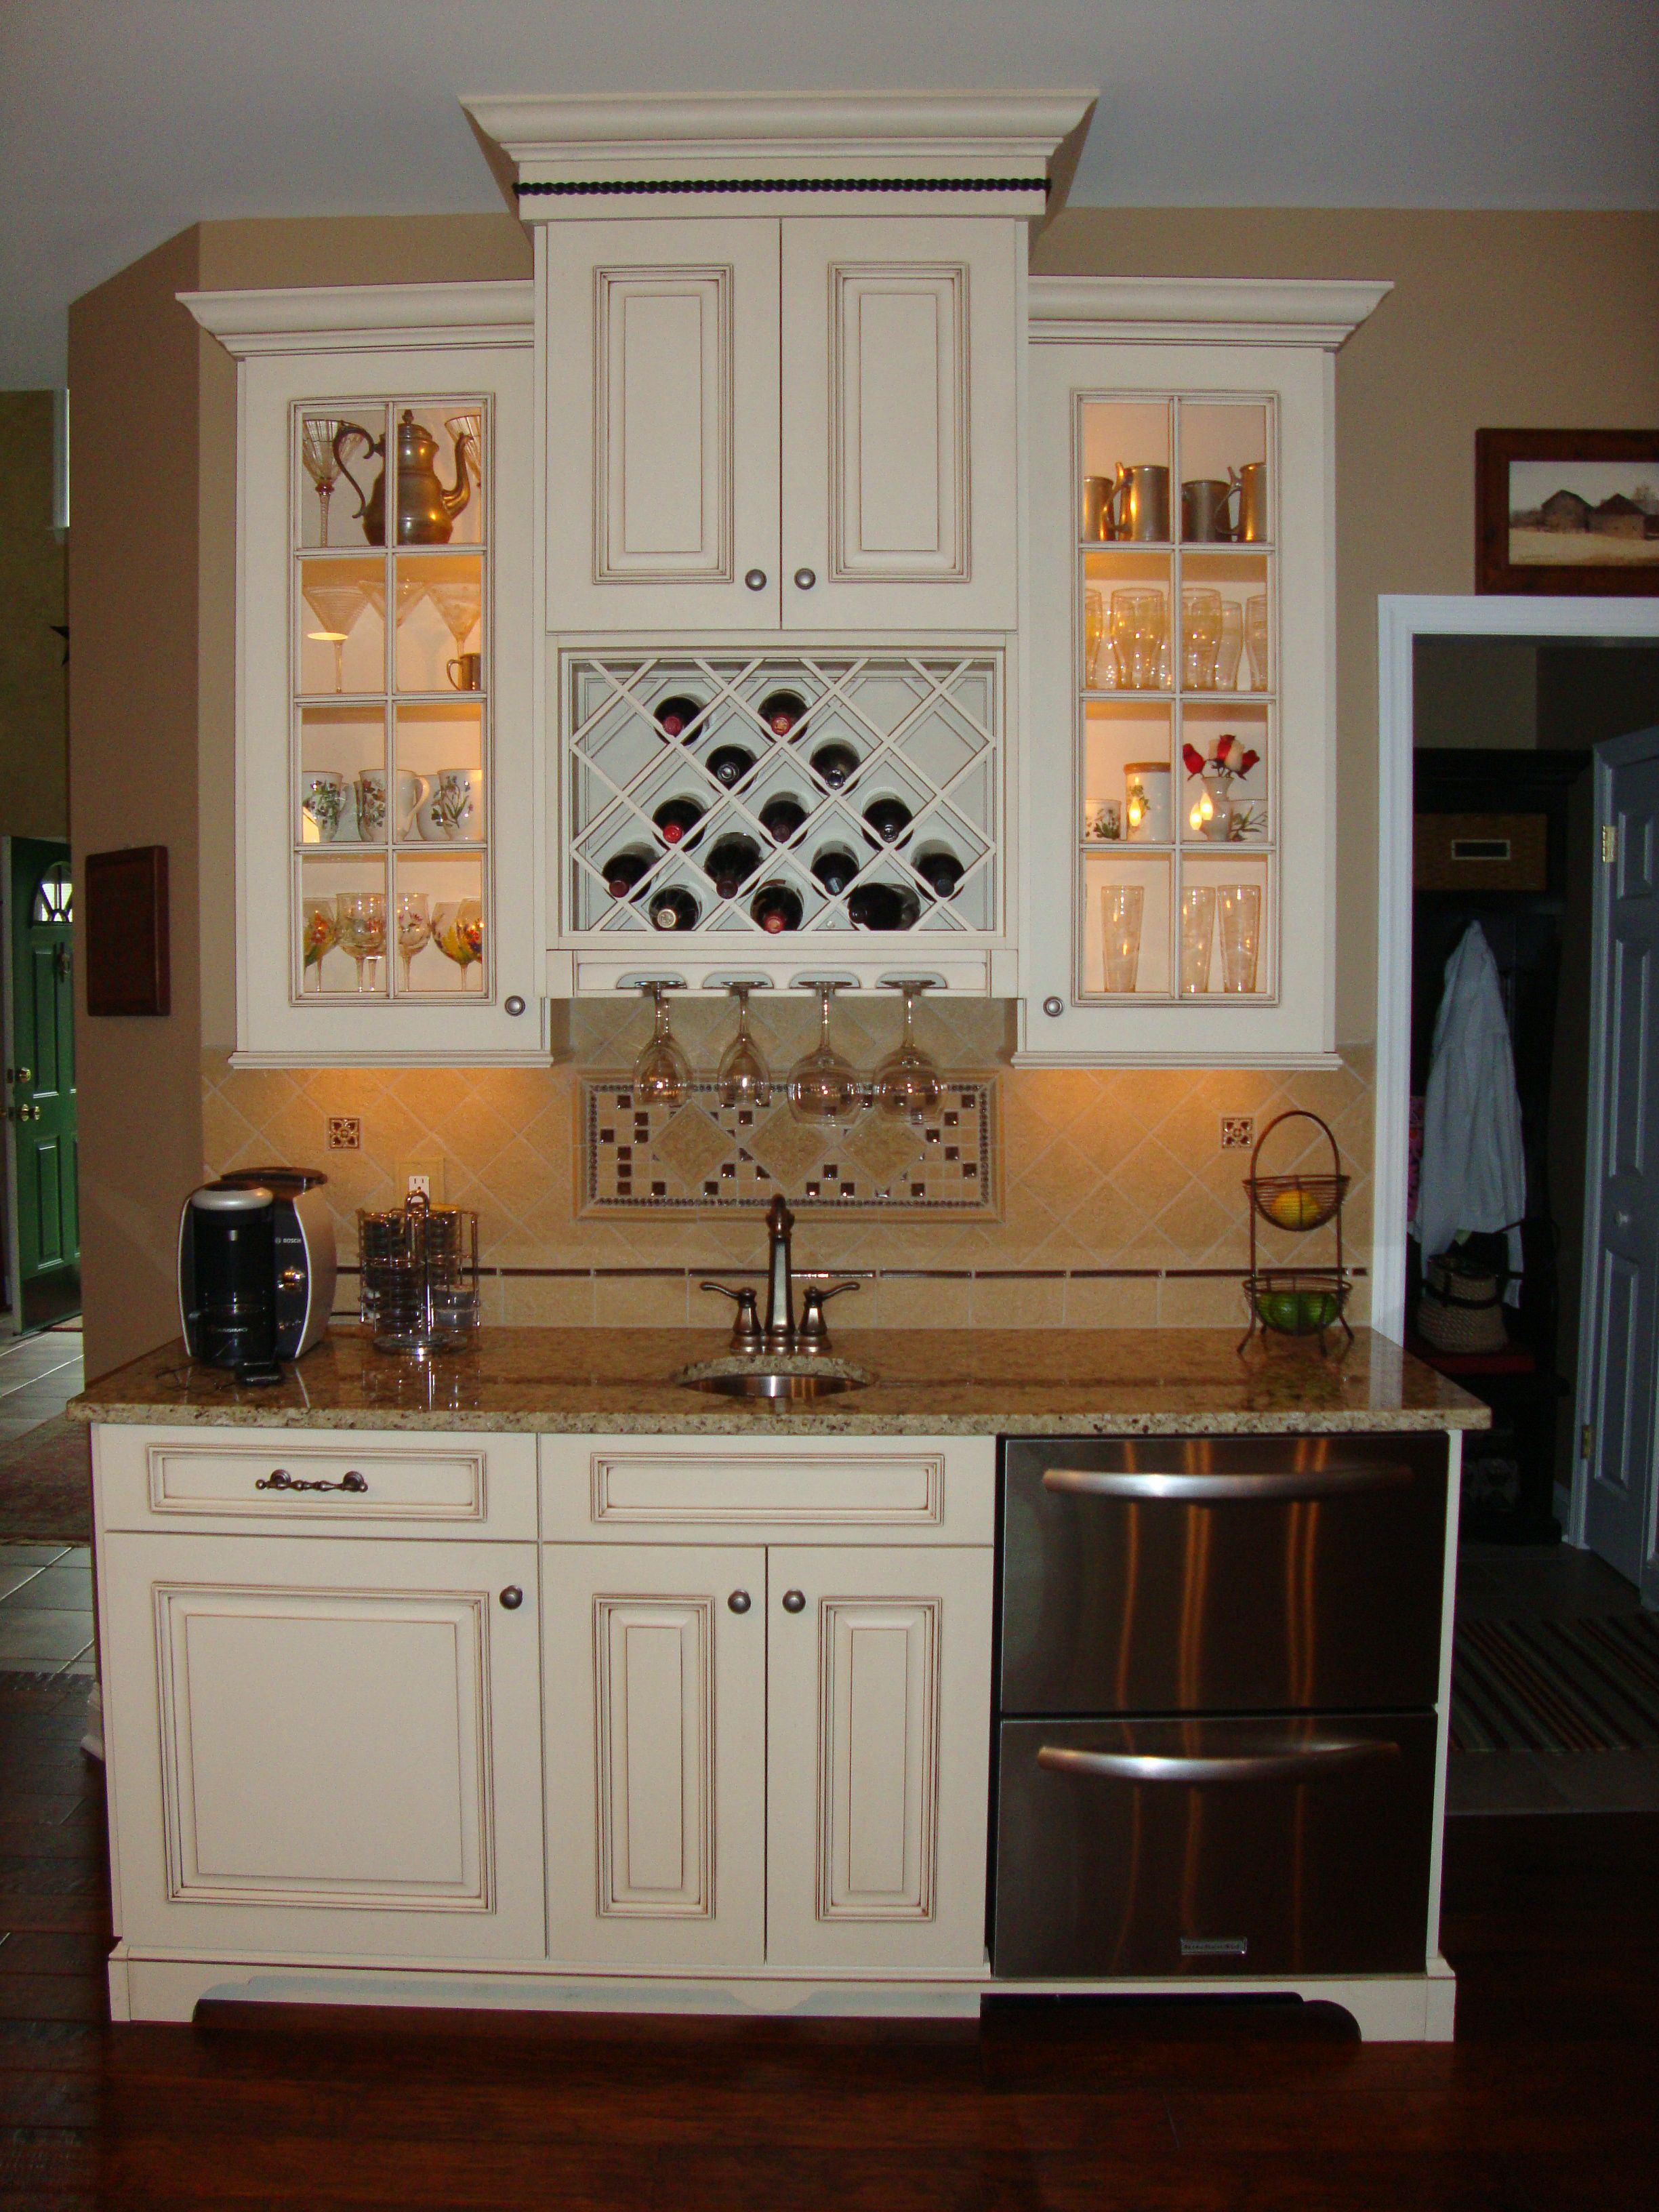 built in kitchen cabinets blue cute wine rack and glass light up but i